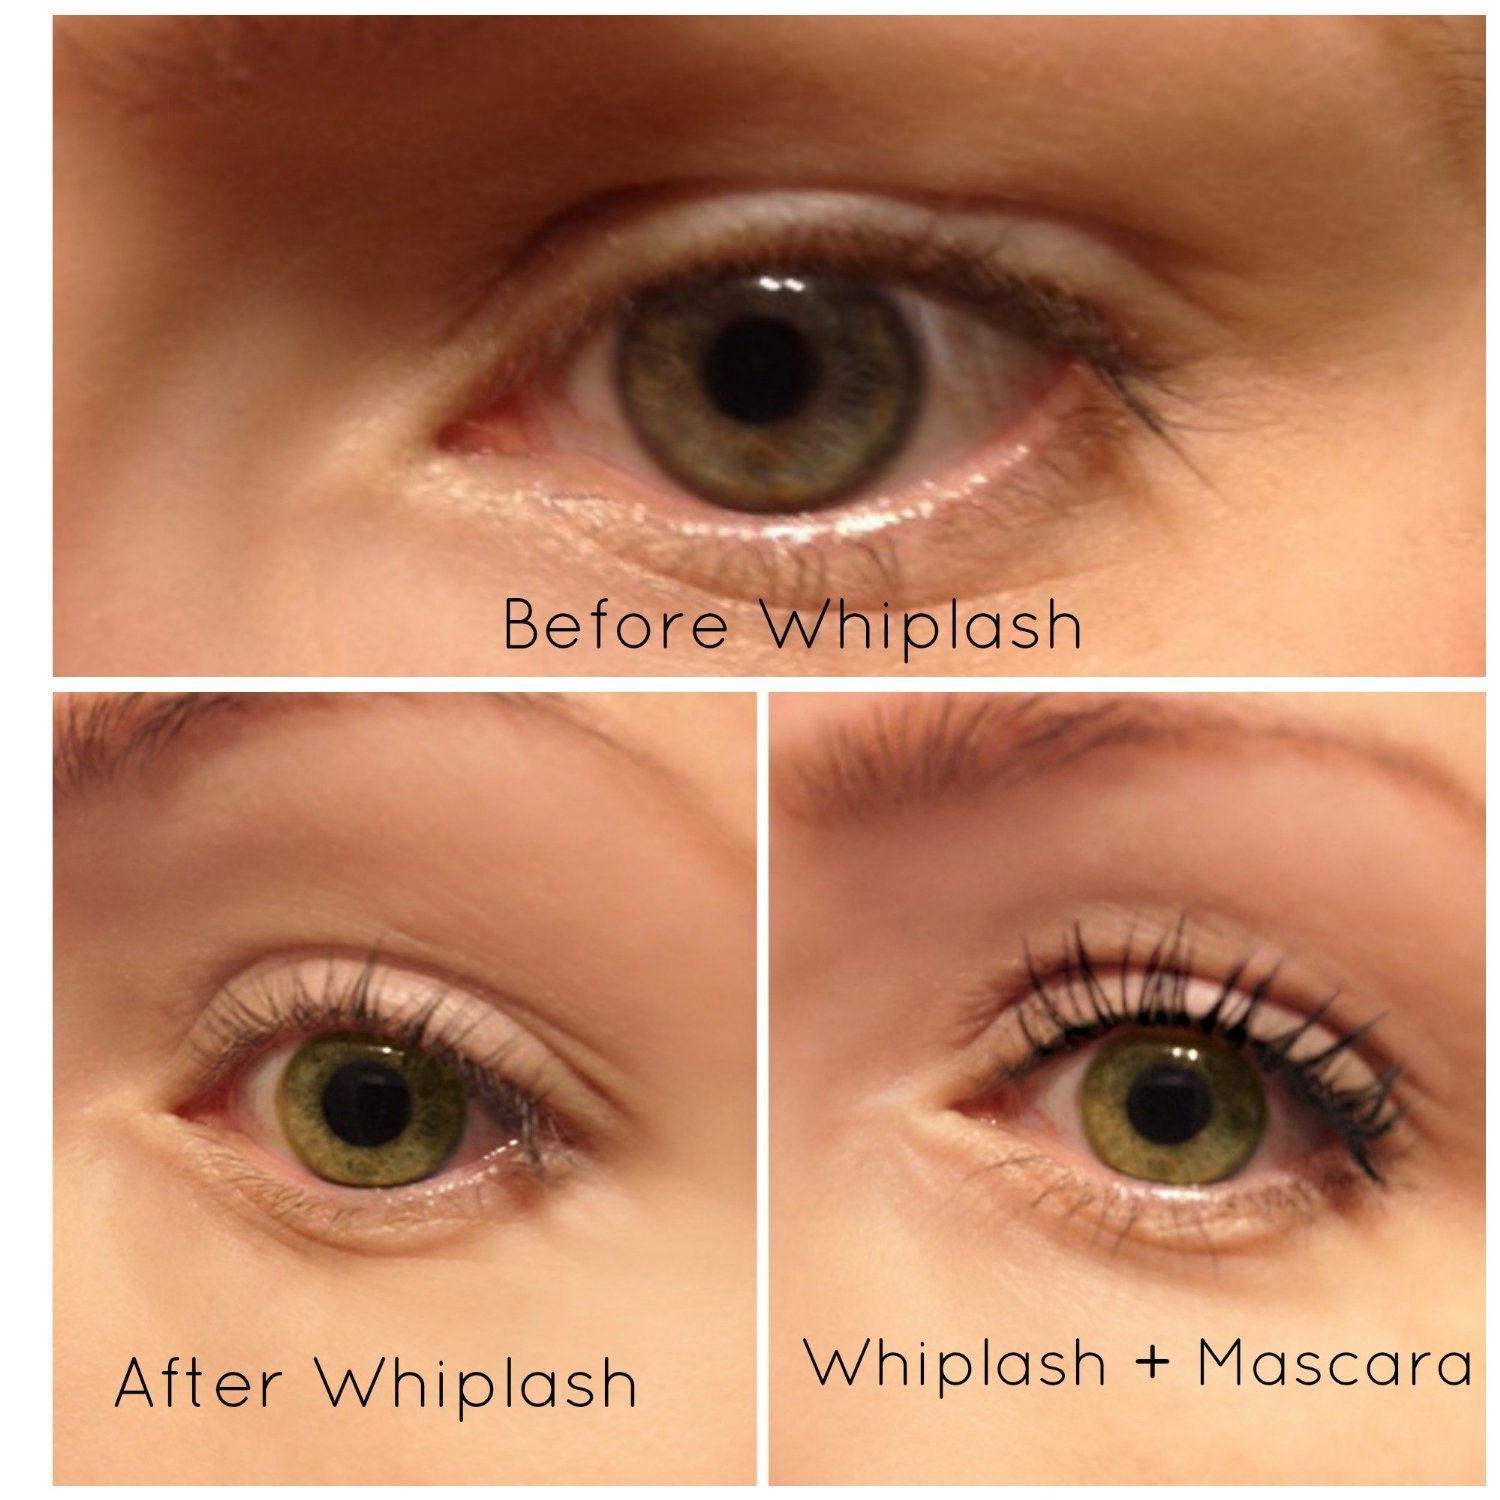 eyelash curler before and after. amazon.com : pink eyelash curler - professional tool for dramatic lashes eye lash beauty before and after t